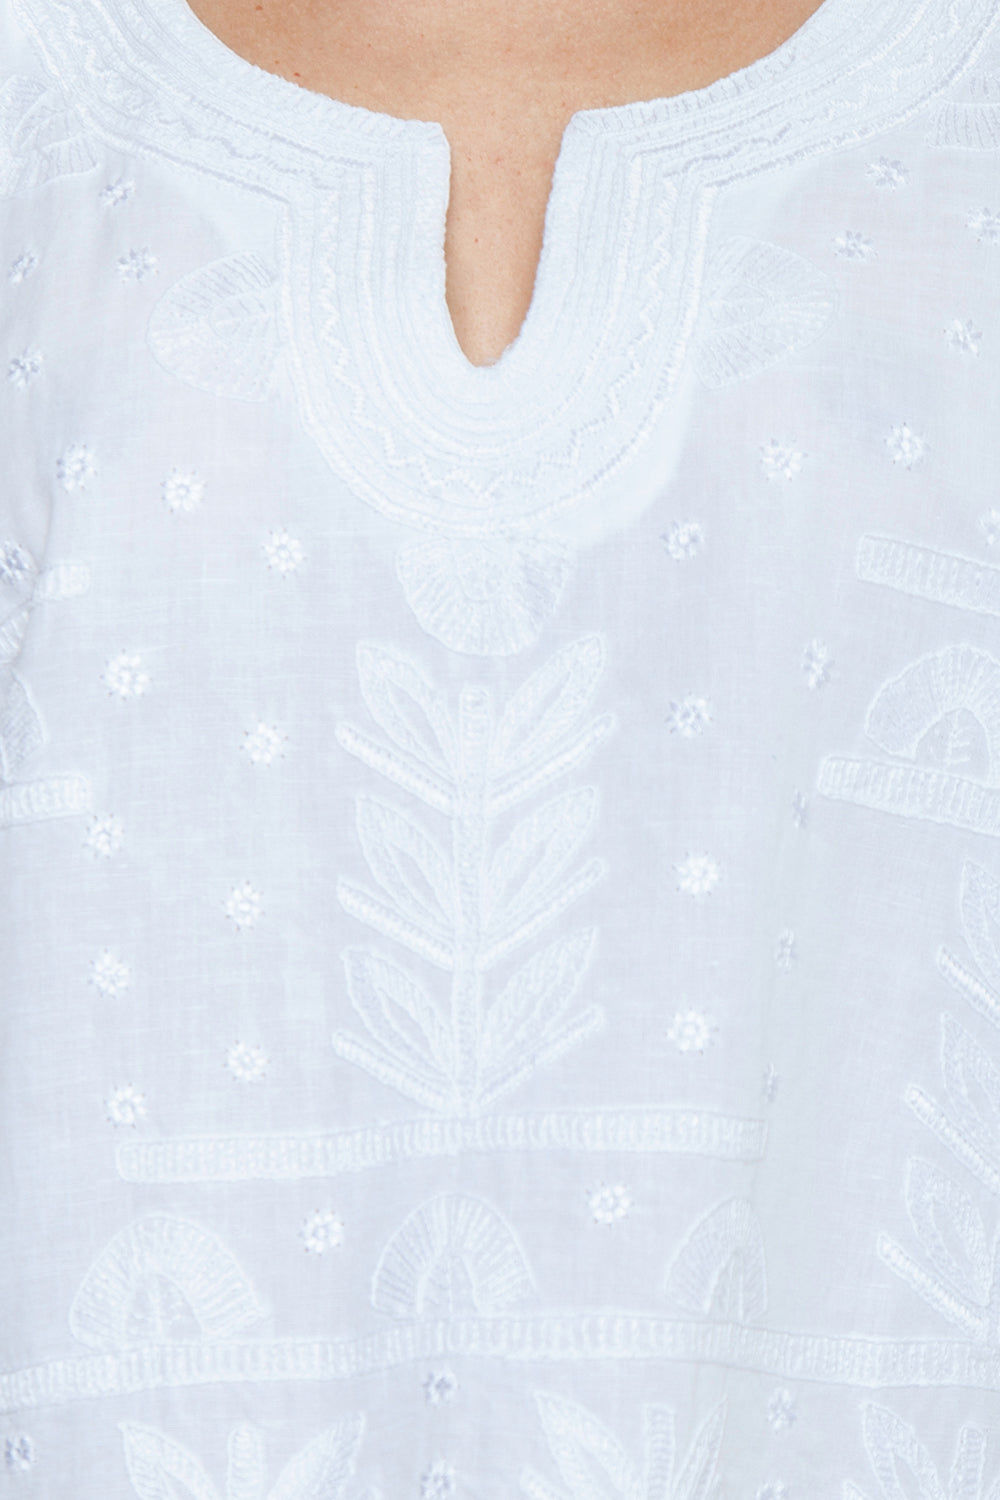 AMITA NAITHANI Riviera Embroidered Tunic - White Cover Up | White| Amita Naithani Riviera Embroidered Tunic - White Features:  White tunic V neckline Short sleeves Embroidered detail Detail View